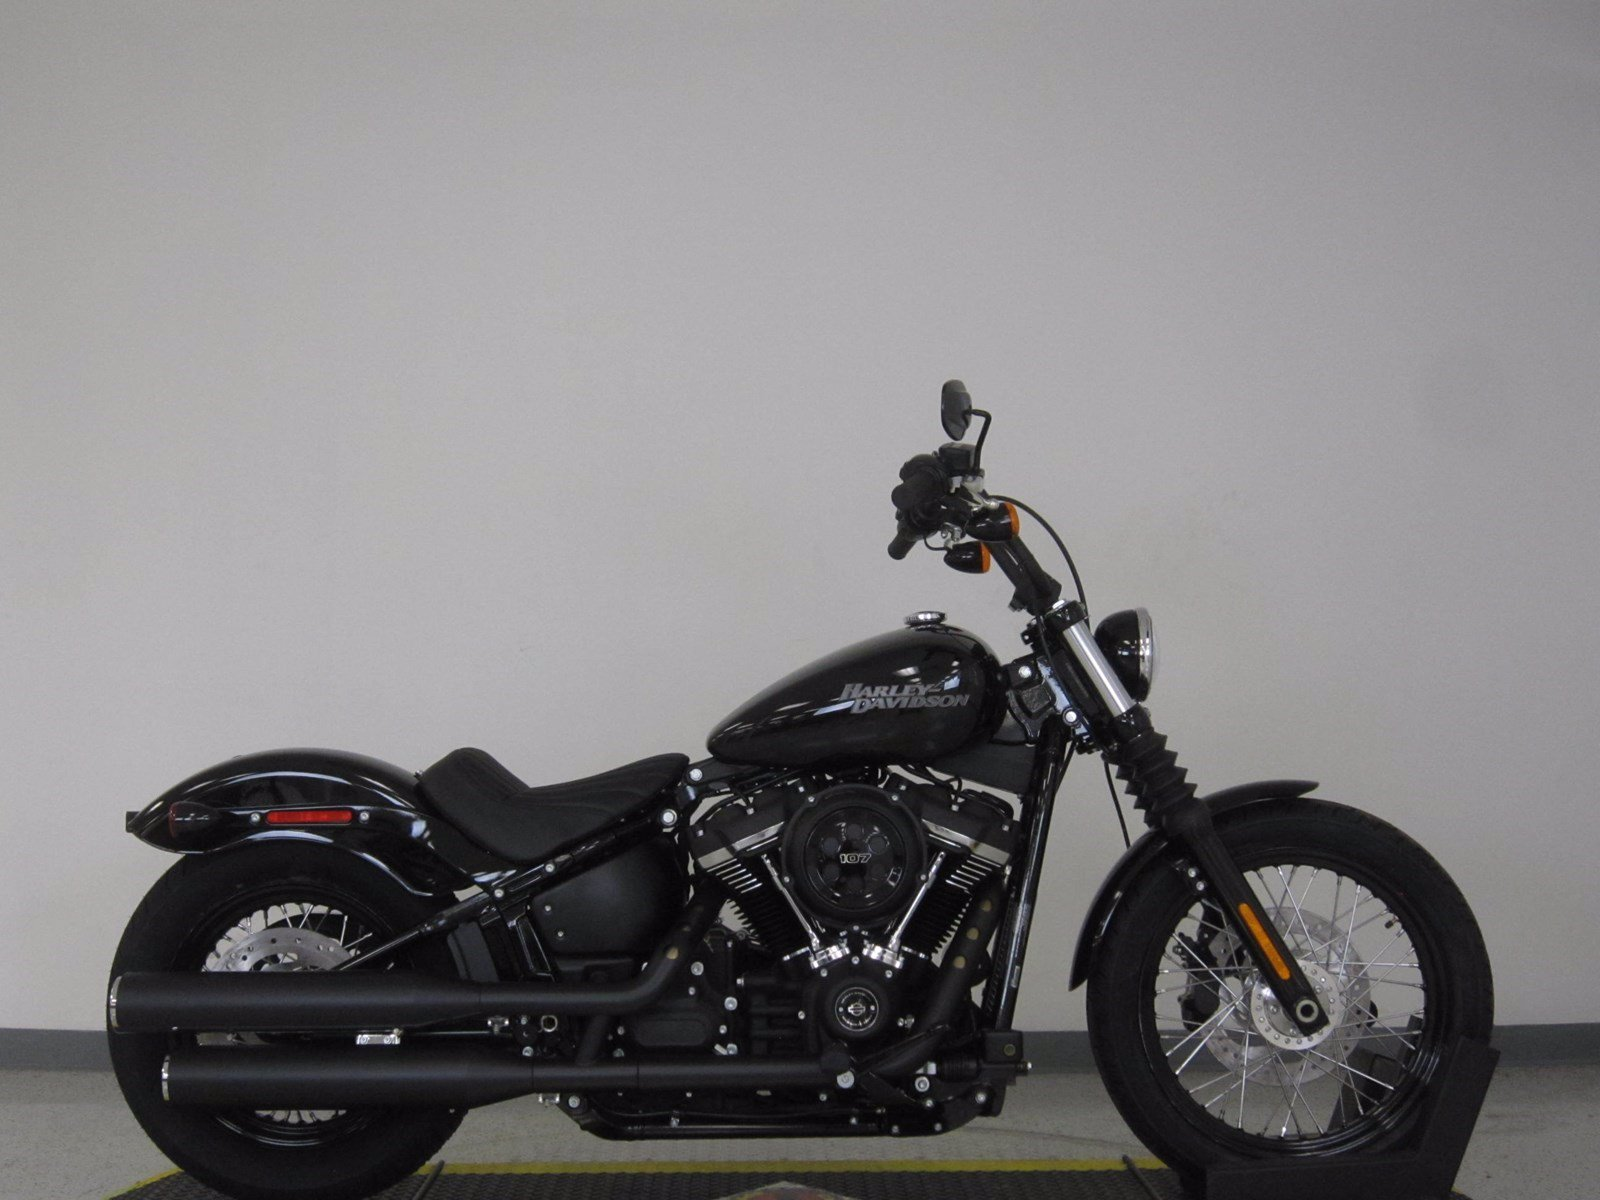 new 2019 harley davidson softail street bob fxbb softail in olathe 19fxbbblk rawhide harley. Black Bedroom Furniture Sets. Home Design Ideas